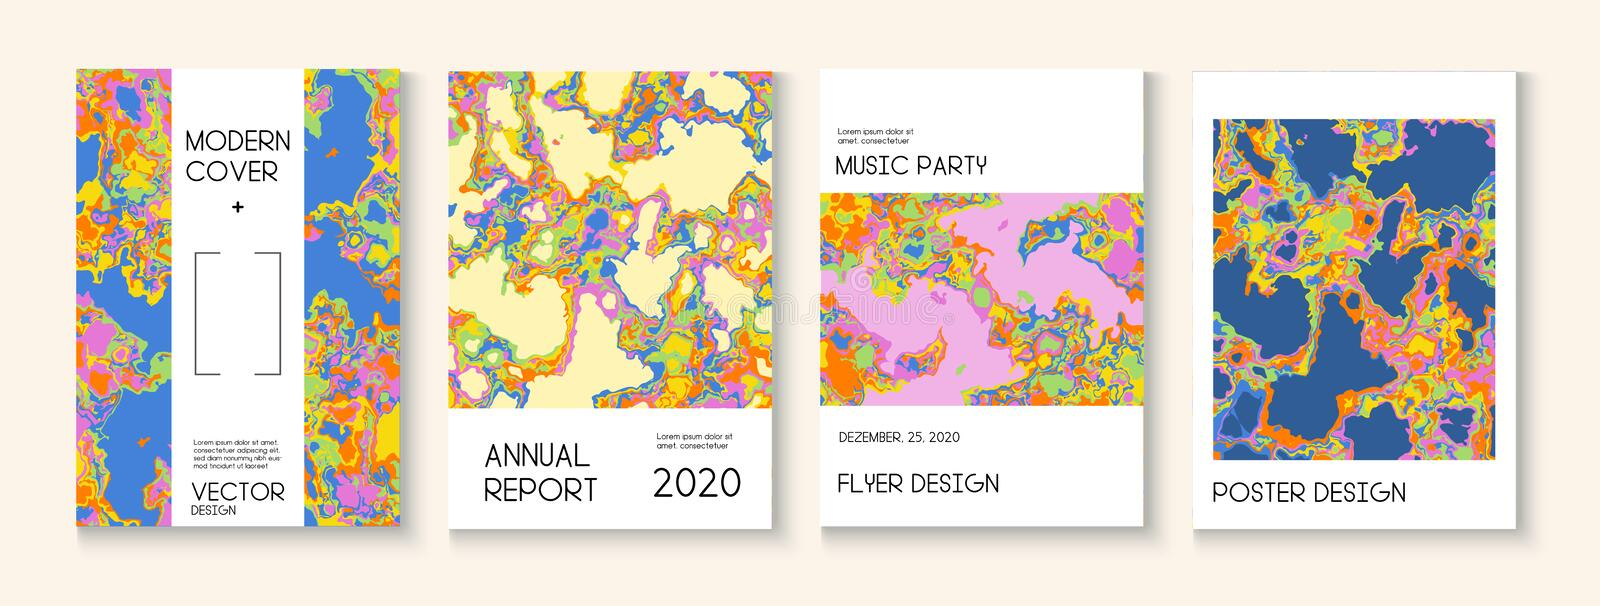 Fluid Paint, Clay Texture Vector Cover Layout. Trendy Magazine, Music Poster Template. Modern Earth Day Ecology Poster stock images